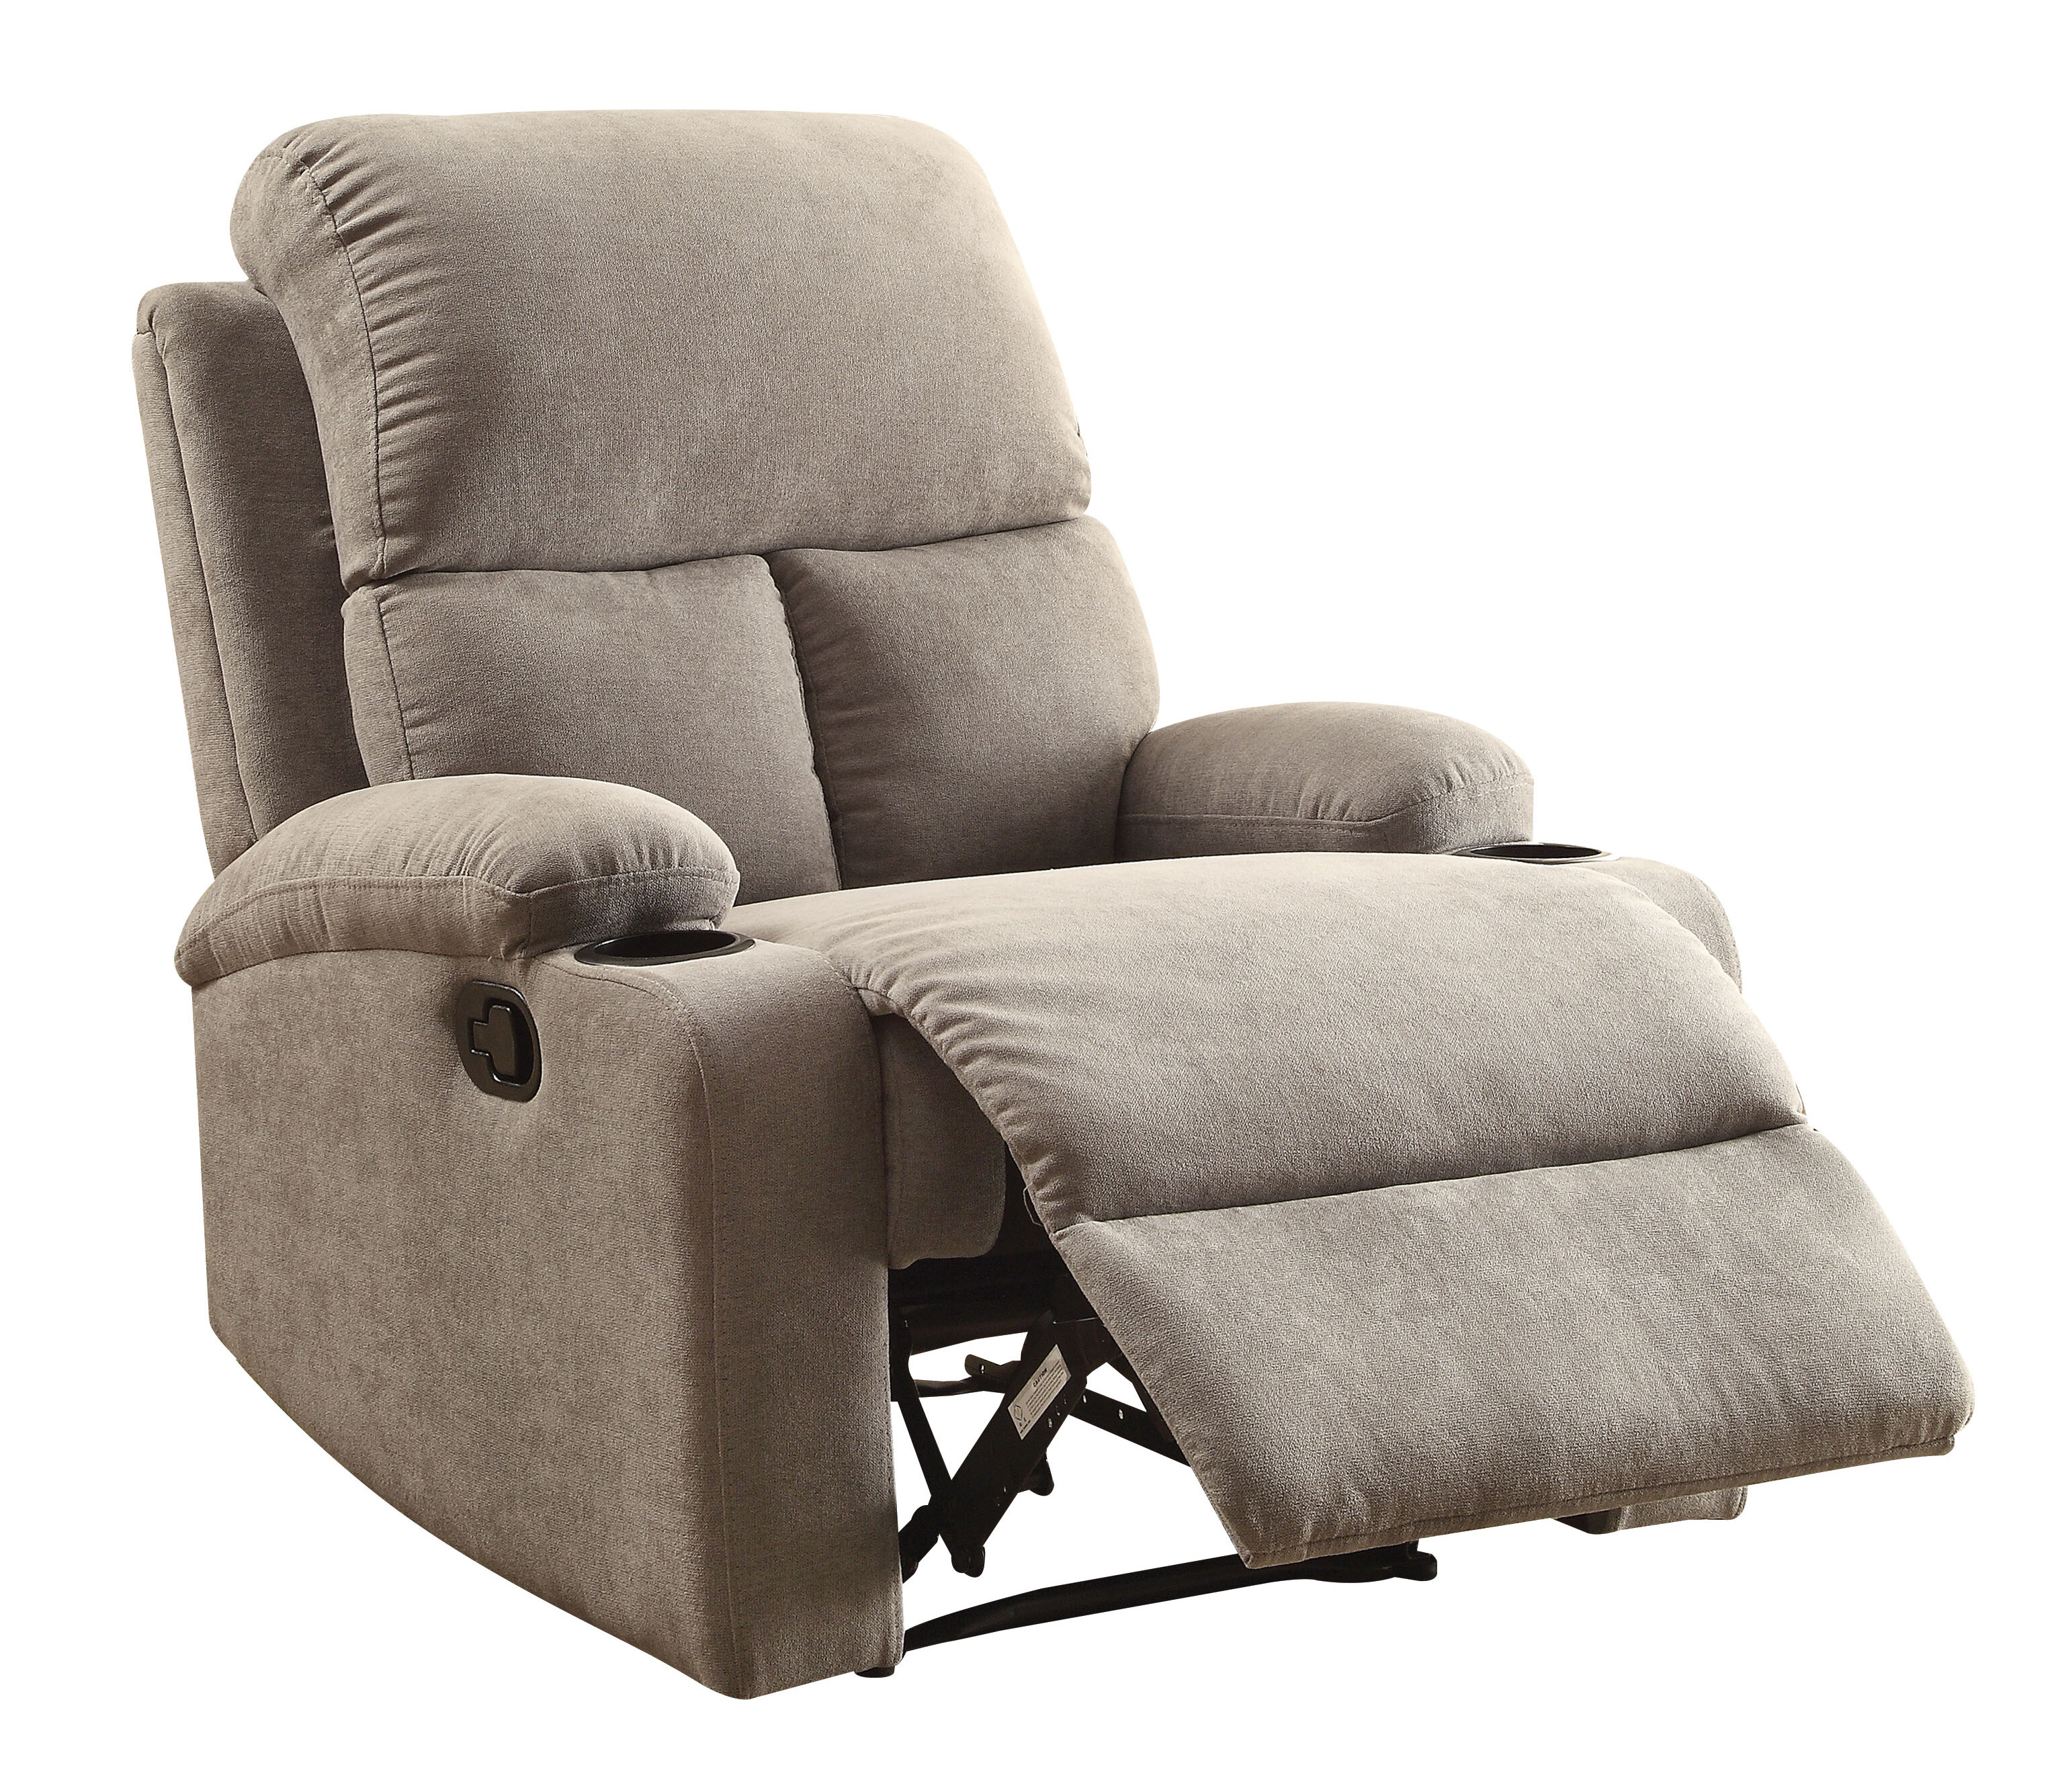 Winston Porter Rockmart Manual Recliner Reviews Wayfair